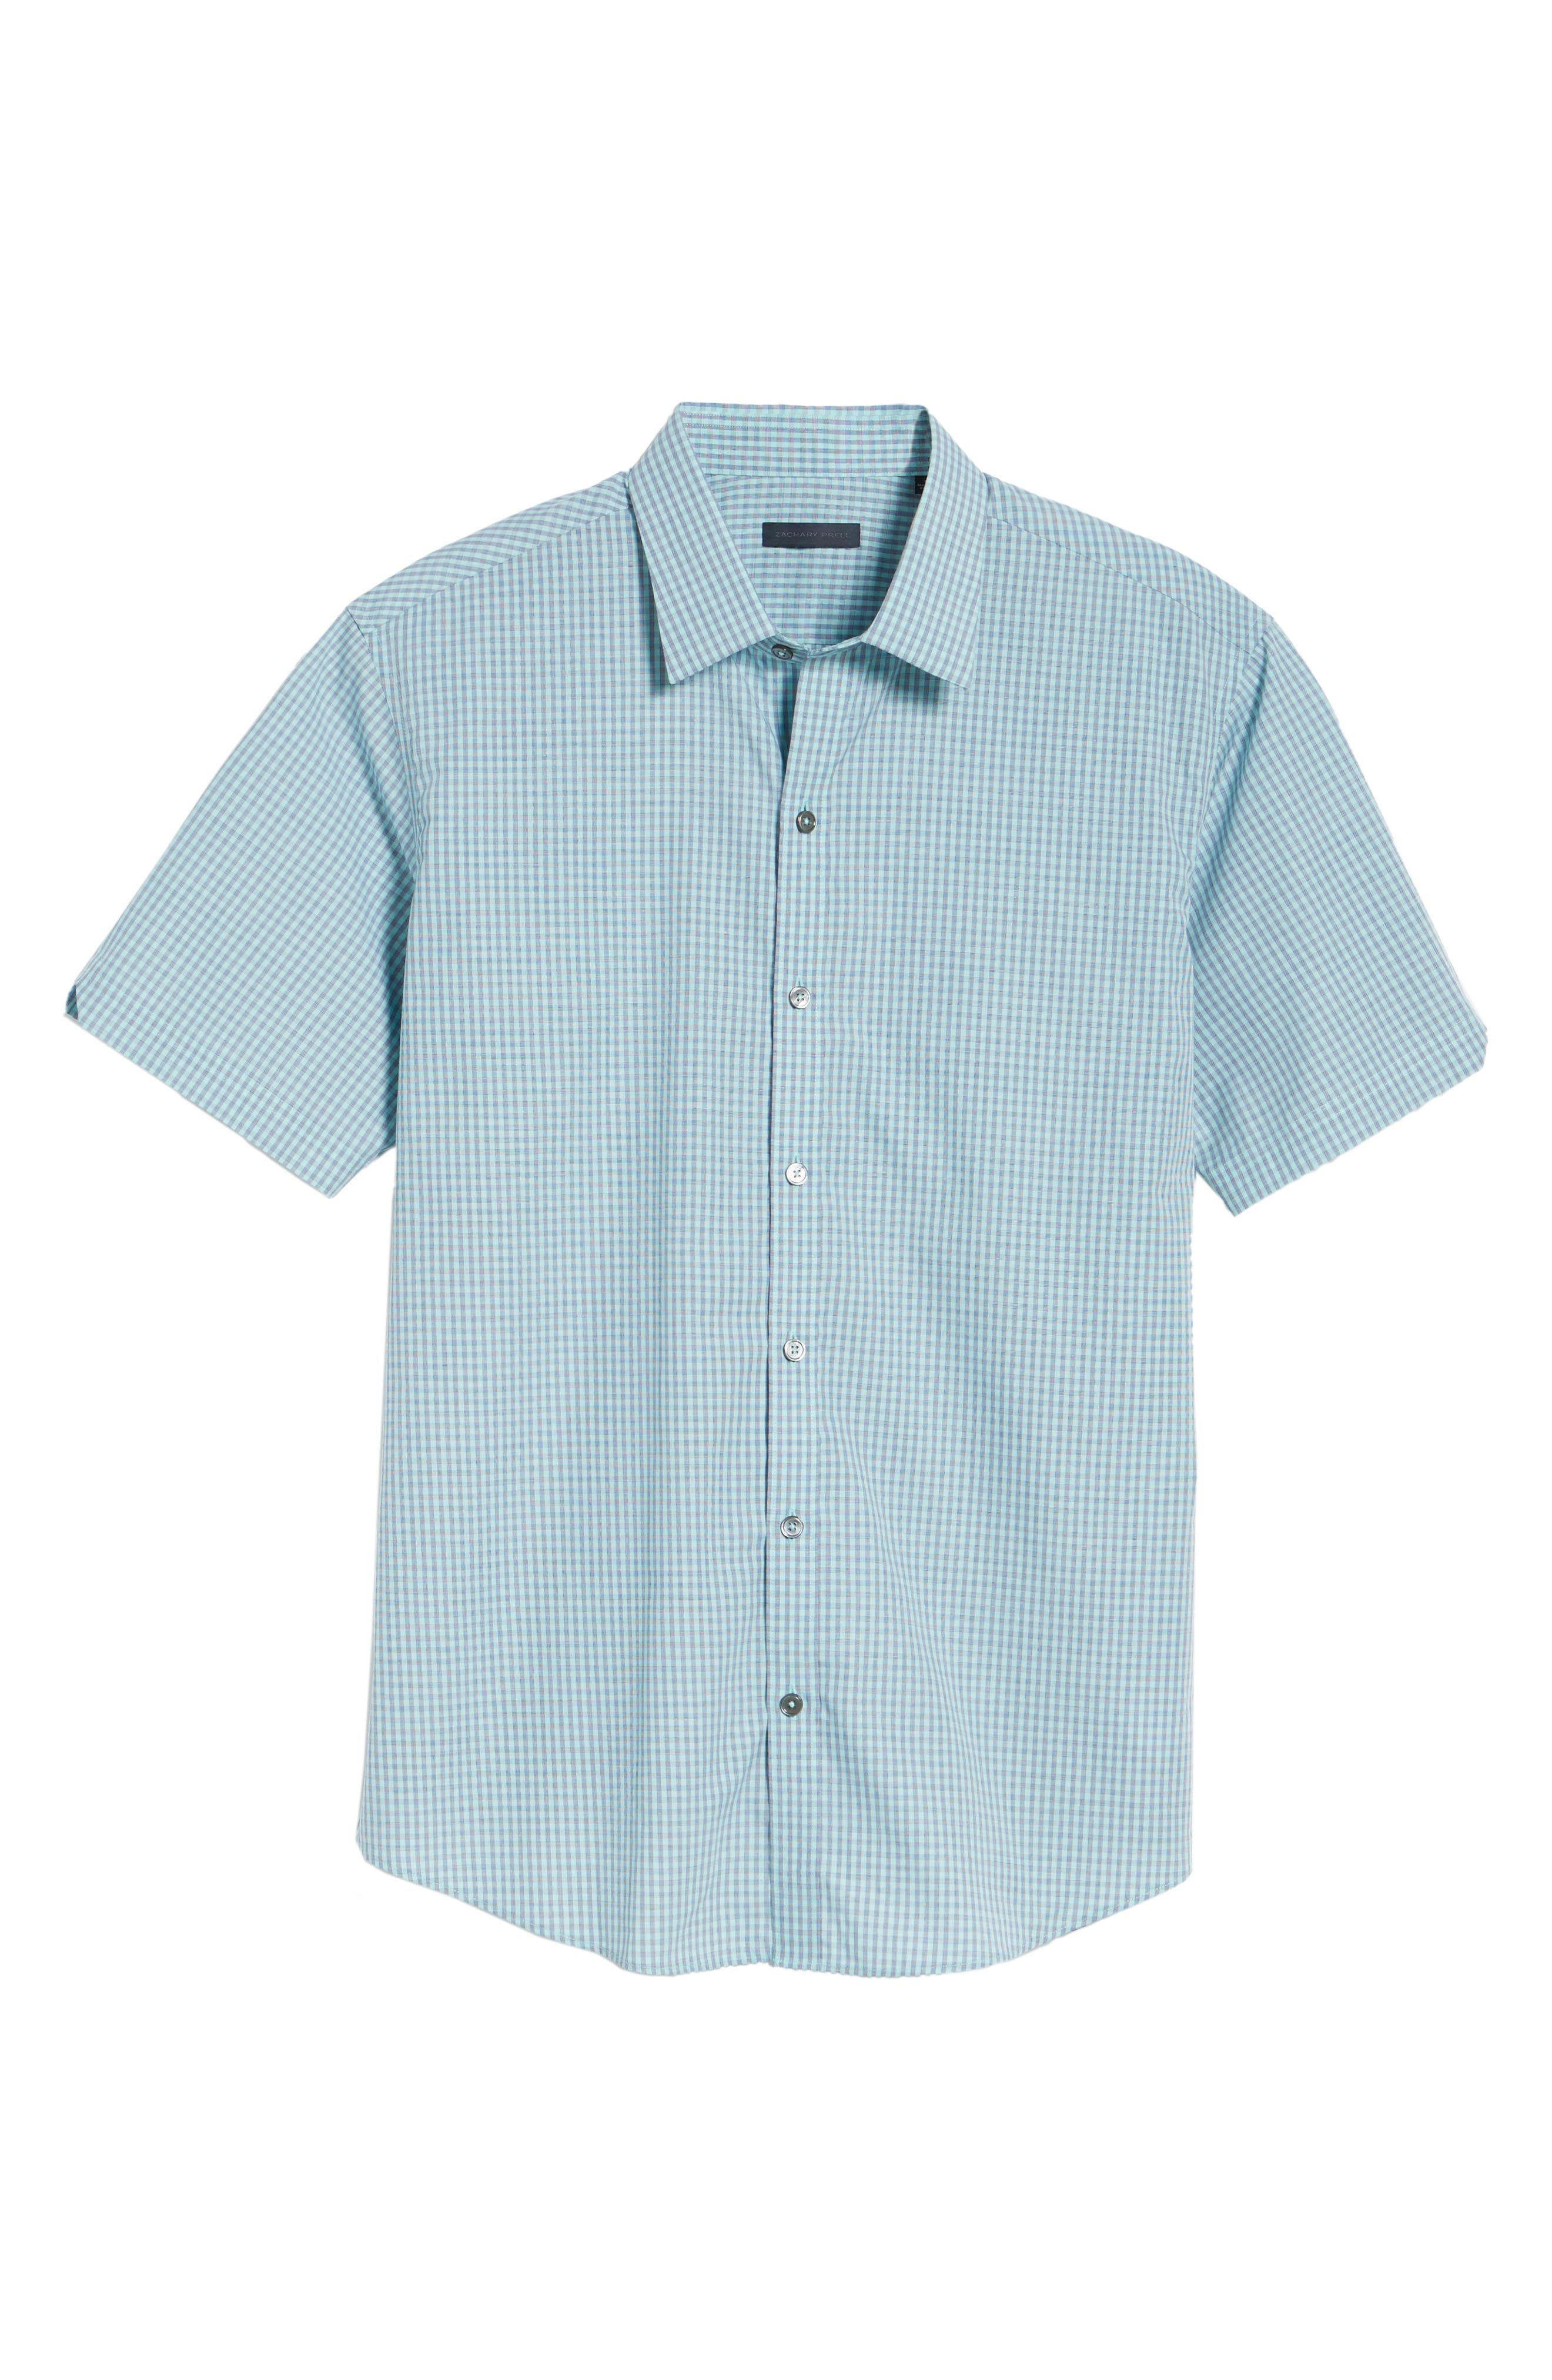 Rappaport Sport Shirt,                             Alternate thumbnail 6, color,                             332